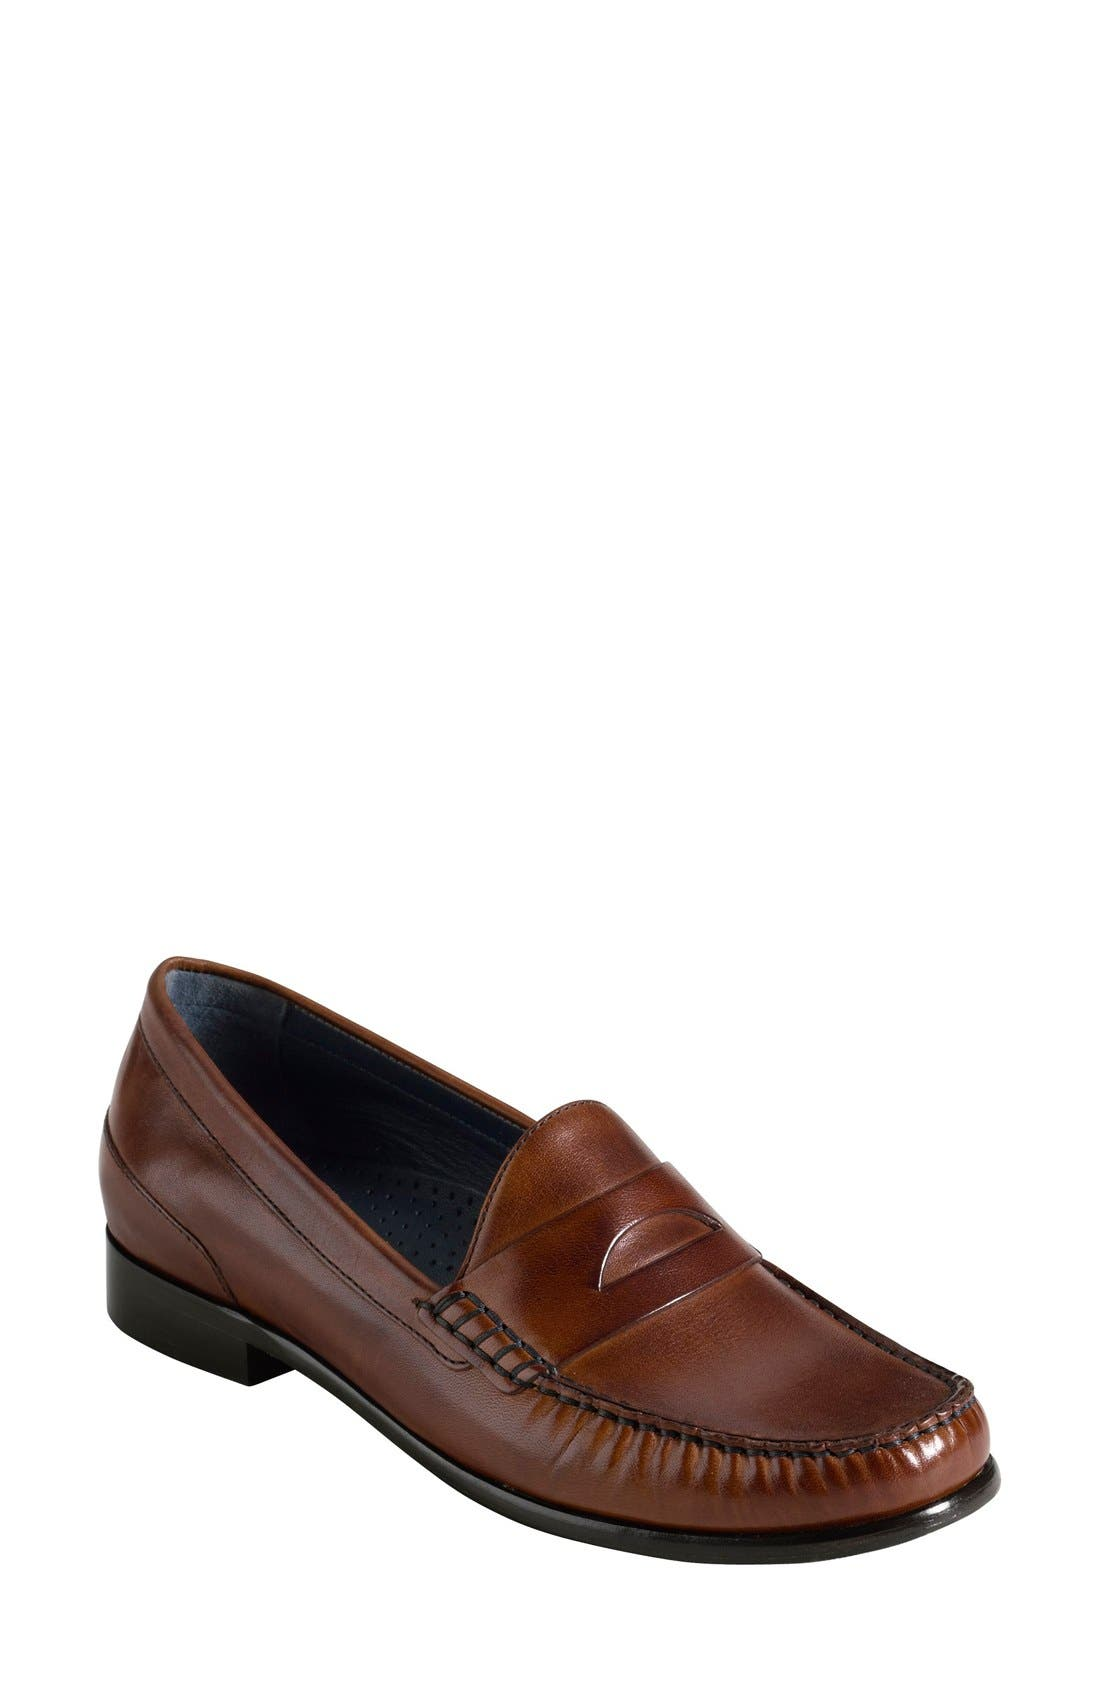 'Laurel' Moc Loafer,                             Main thumbnail 1, color,                             200